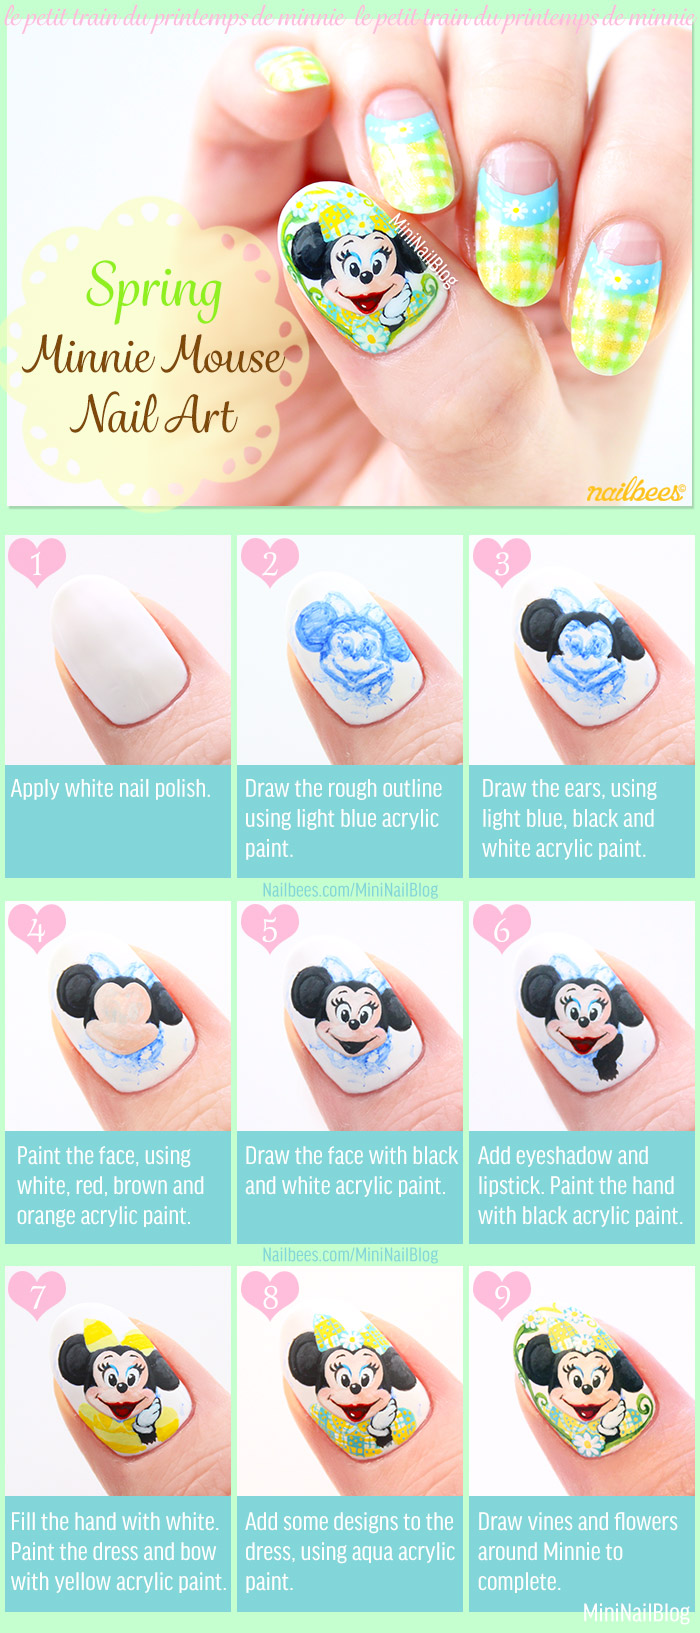 Spring Minnie Mouse Nail Art Tutorial